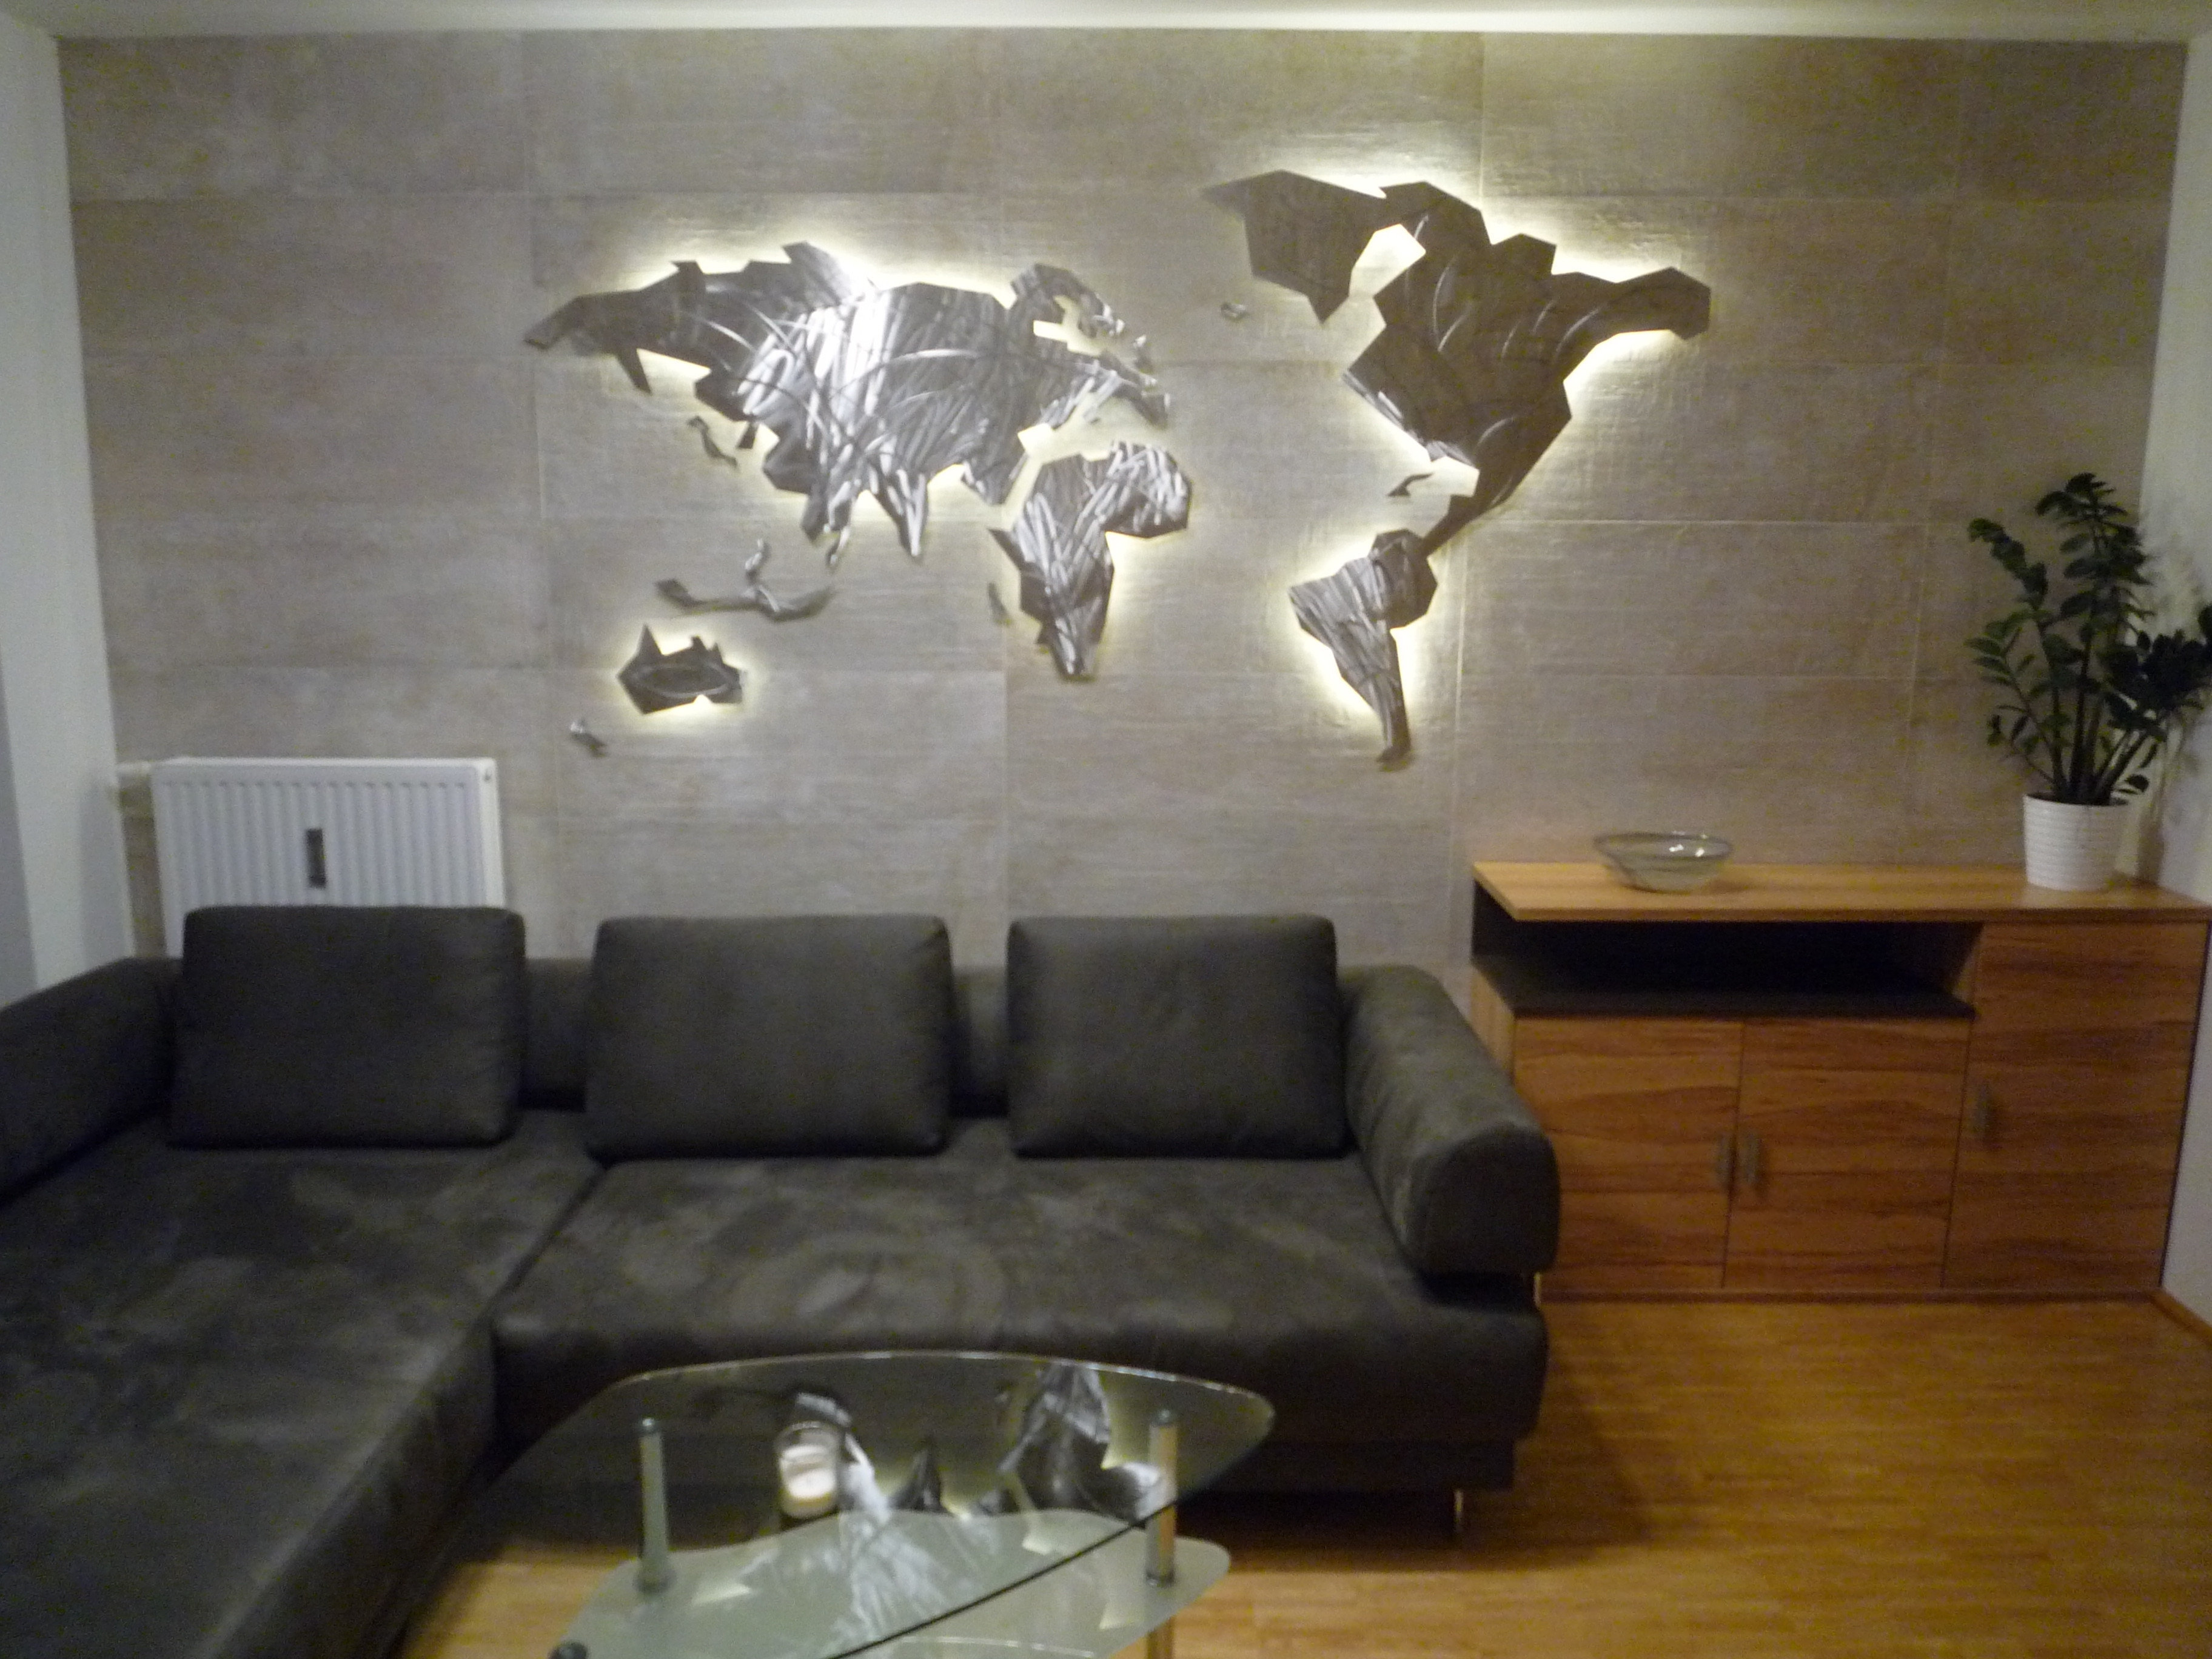 Wall Art Map Of World With Fashionable 39 Inspirational World Map Wall Art Framed Design Ideas Of Led Wall (View 14 of 20)